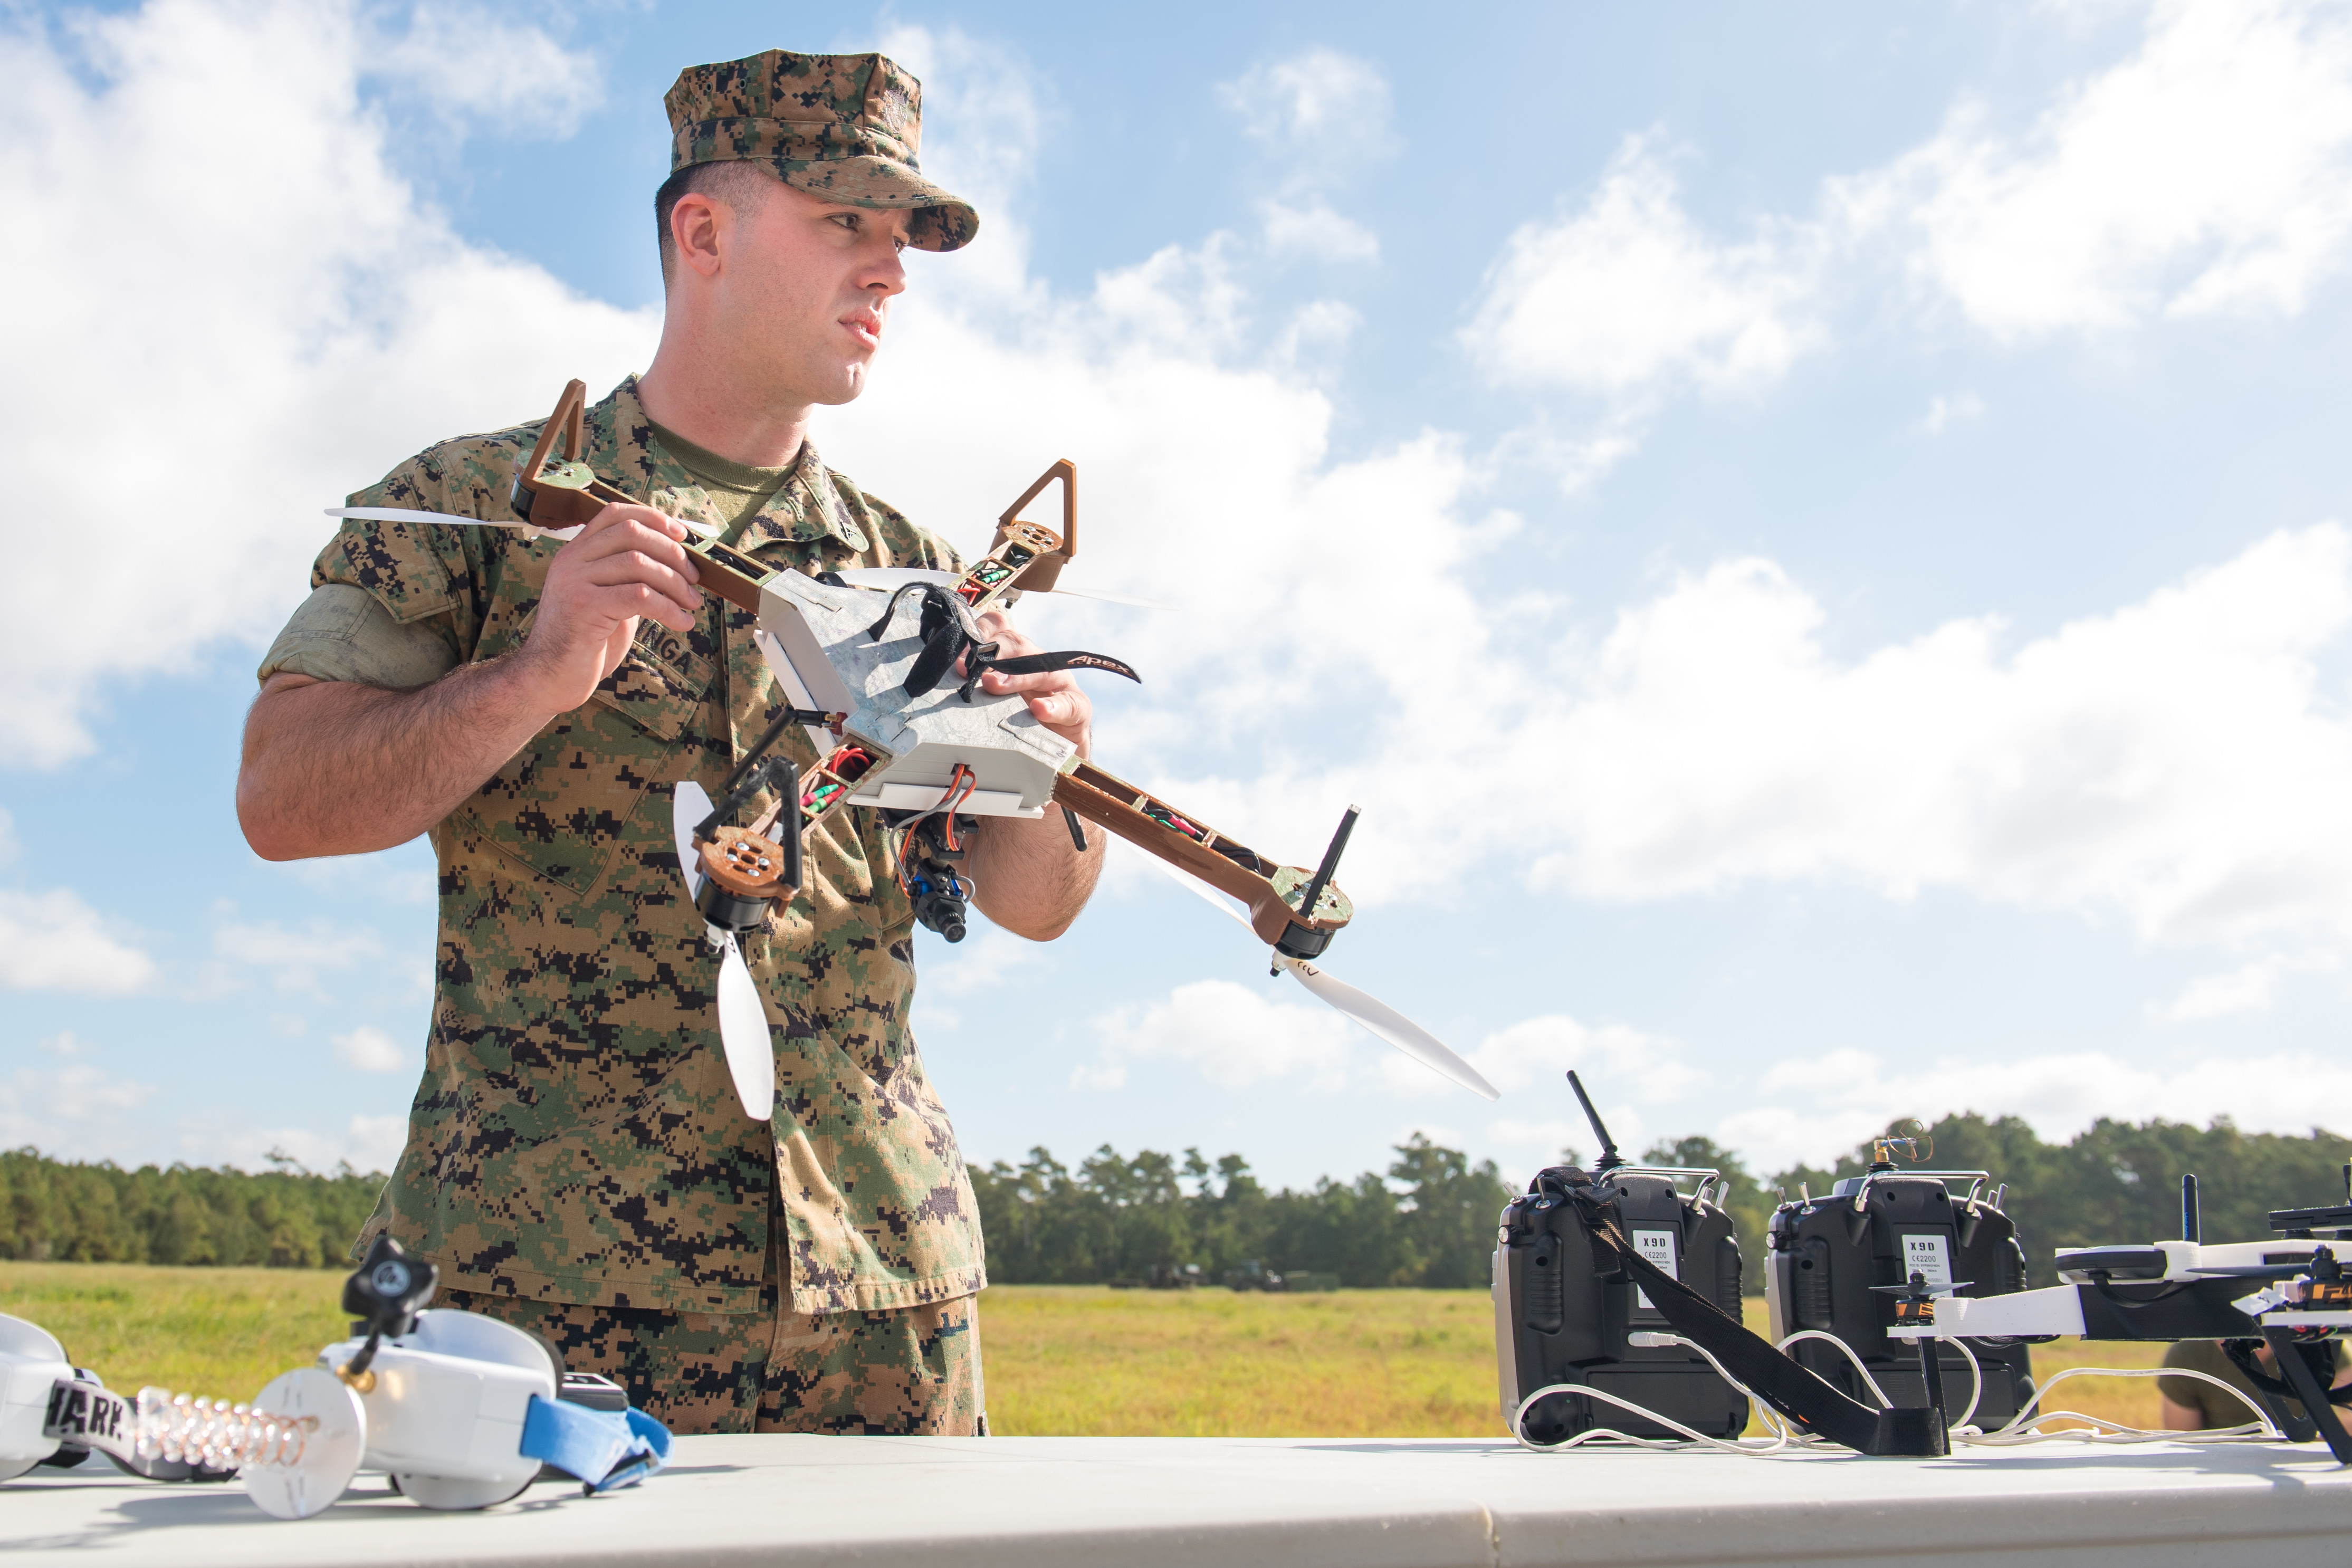 Lance Cpl. Nicholas Hettinga, gets familiar with a 3-D printed Army drone prototype during training at Camp Lejeune, North Carolina, Sept. 27, 2017. (Army)